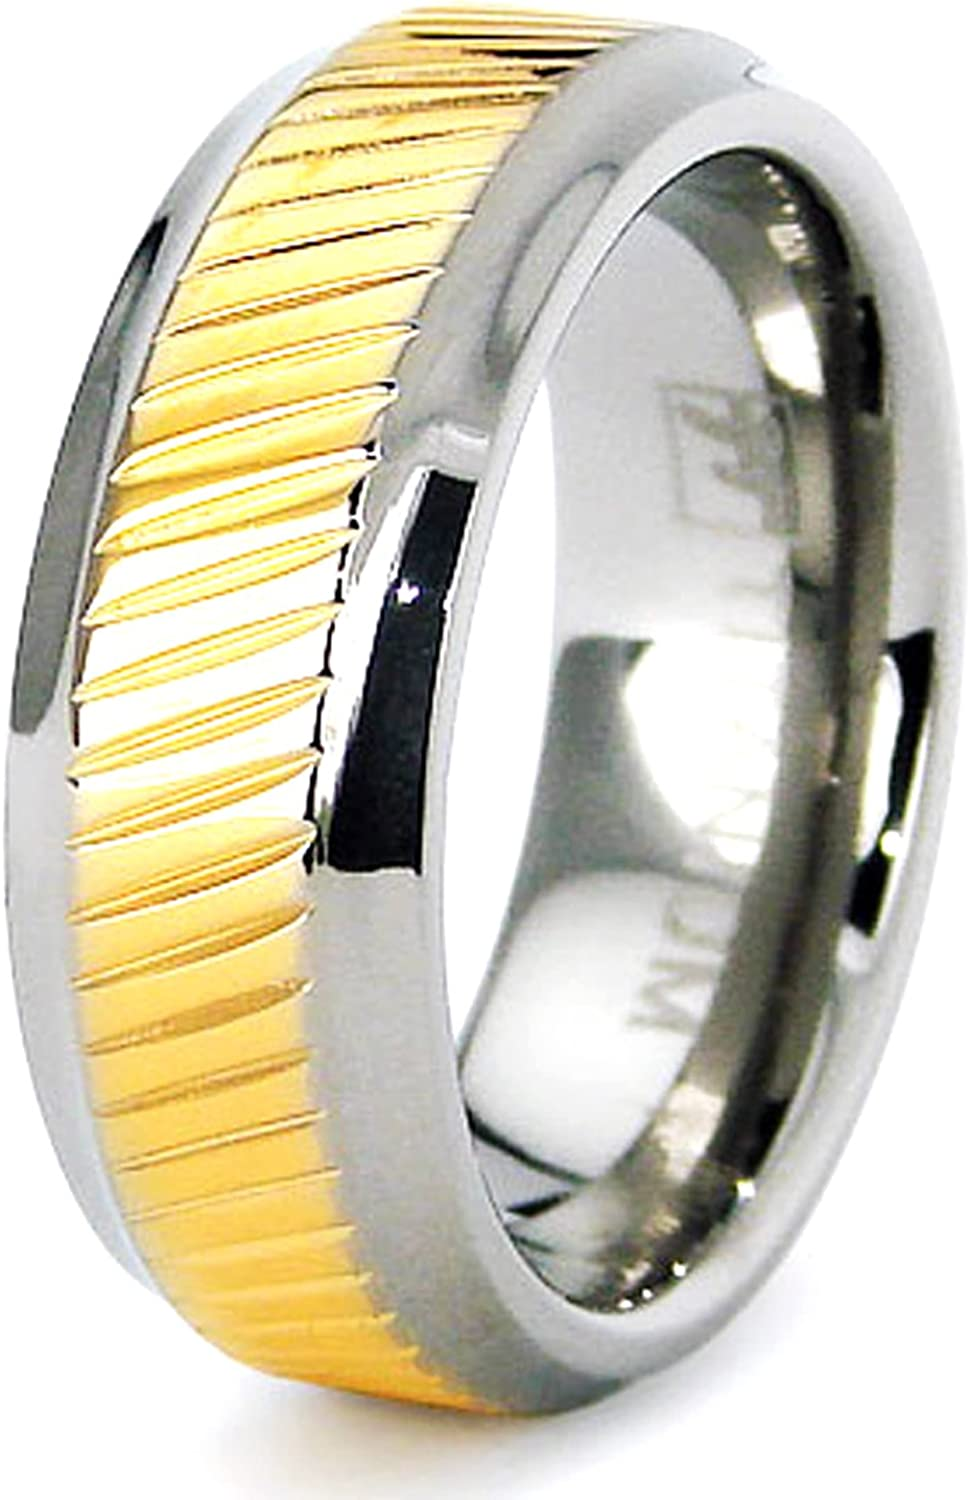 WEDDING BAND STAINLESS STEEL MILGRAIN RING ETERNITY CZ COMFORT FIT TWO-TONE 7mm